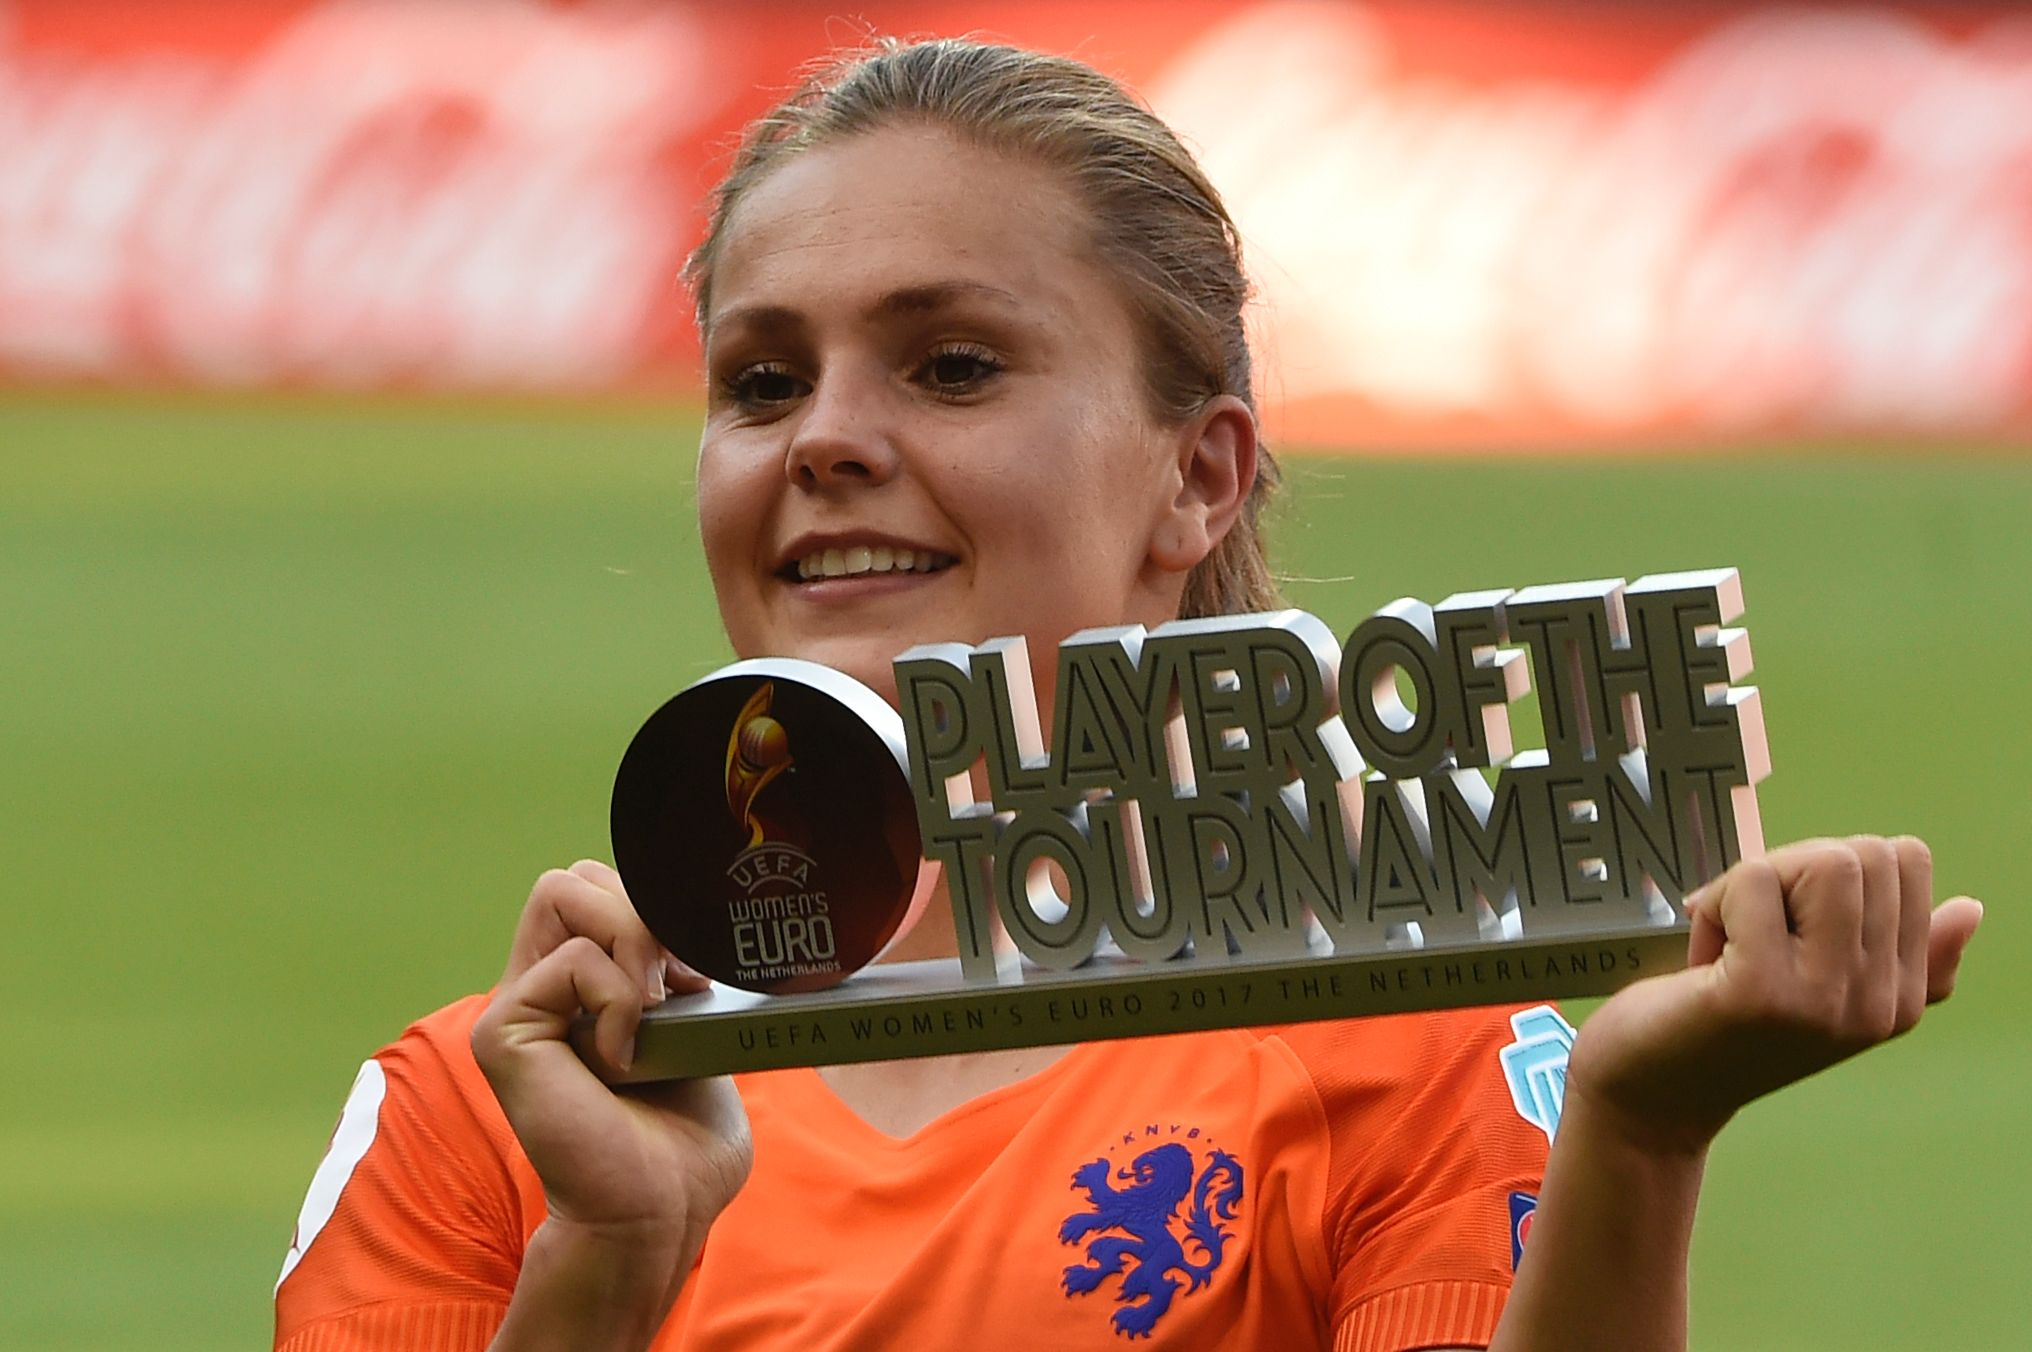 Netherlands' midfielder Lieke Martens celebrates with her trophy after receiving the best player award of the competition at the end of the UEFA Women's Euro 2017 football tournament final match between Netherlands and Denmark at Fc Twente Stadium in Enschede on August 6, 2017. / AFP PHOTO / JOHN THYS